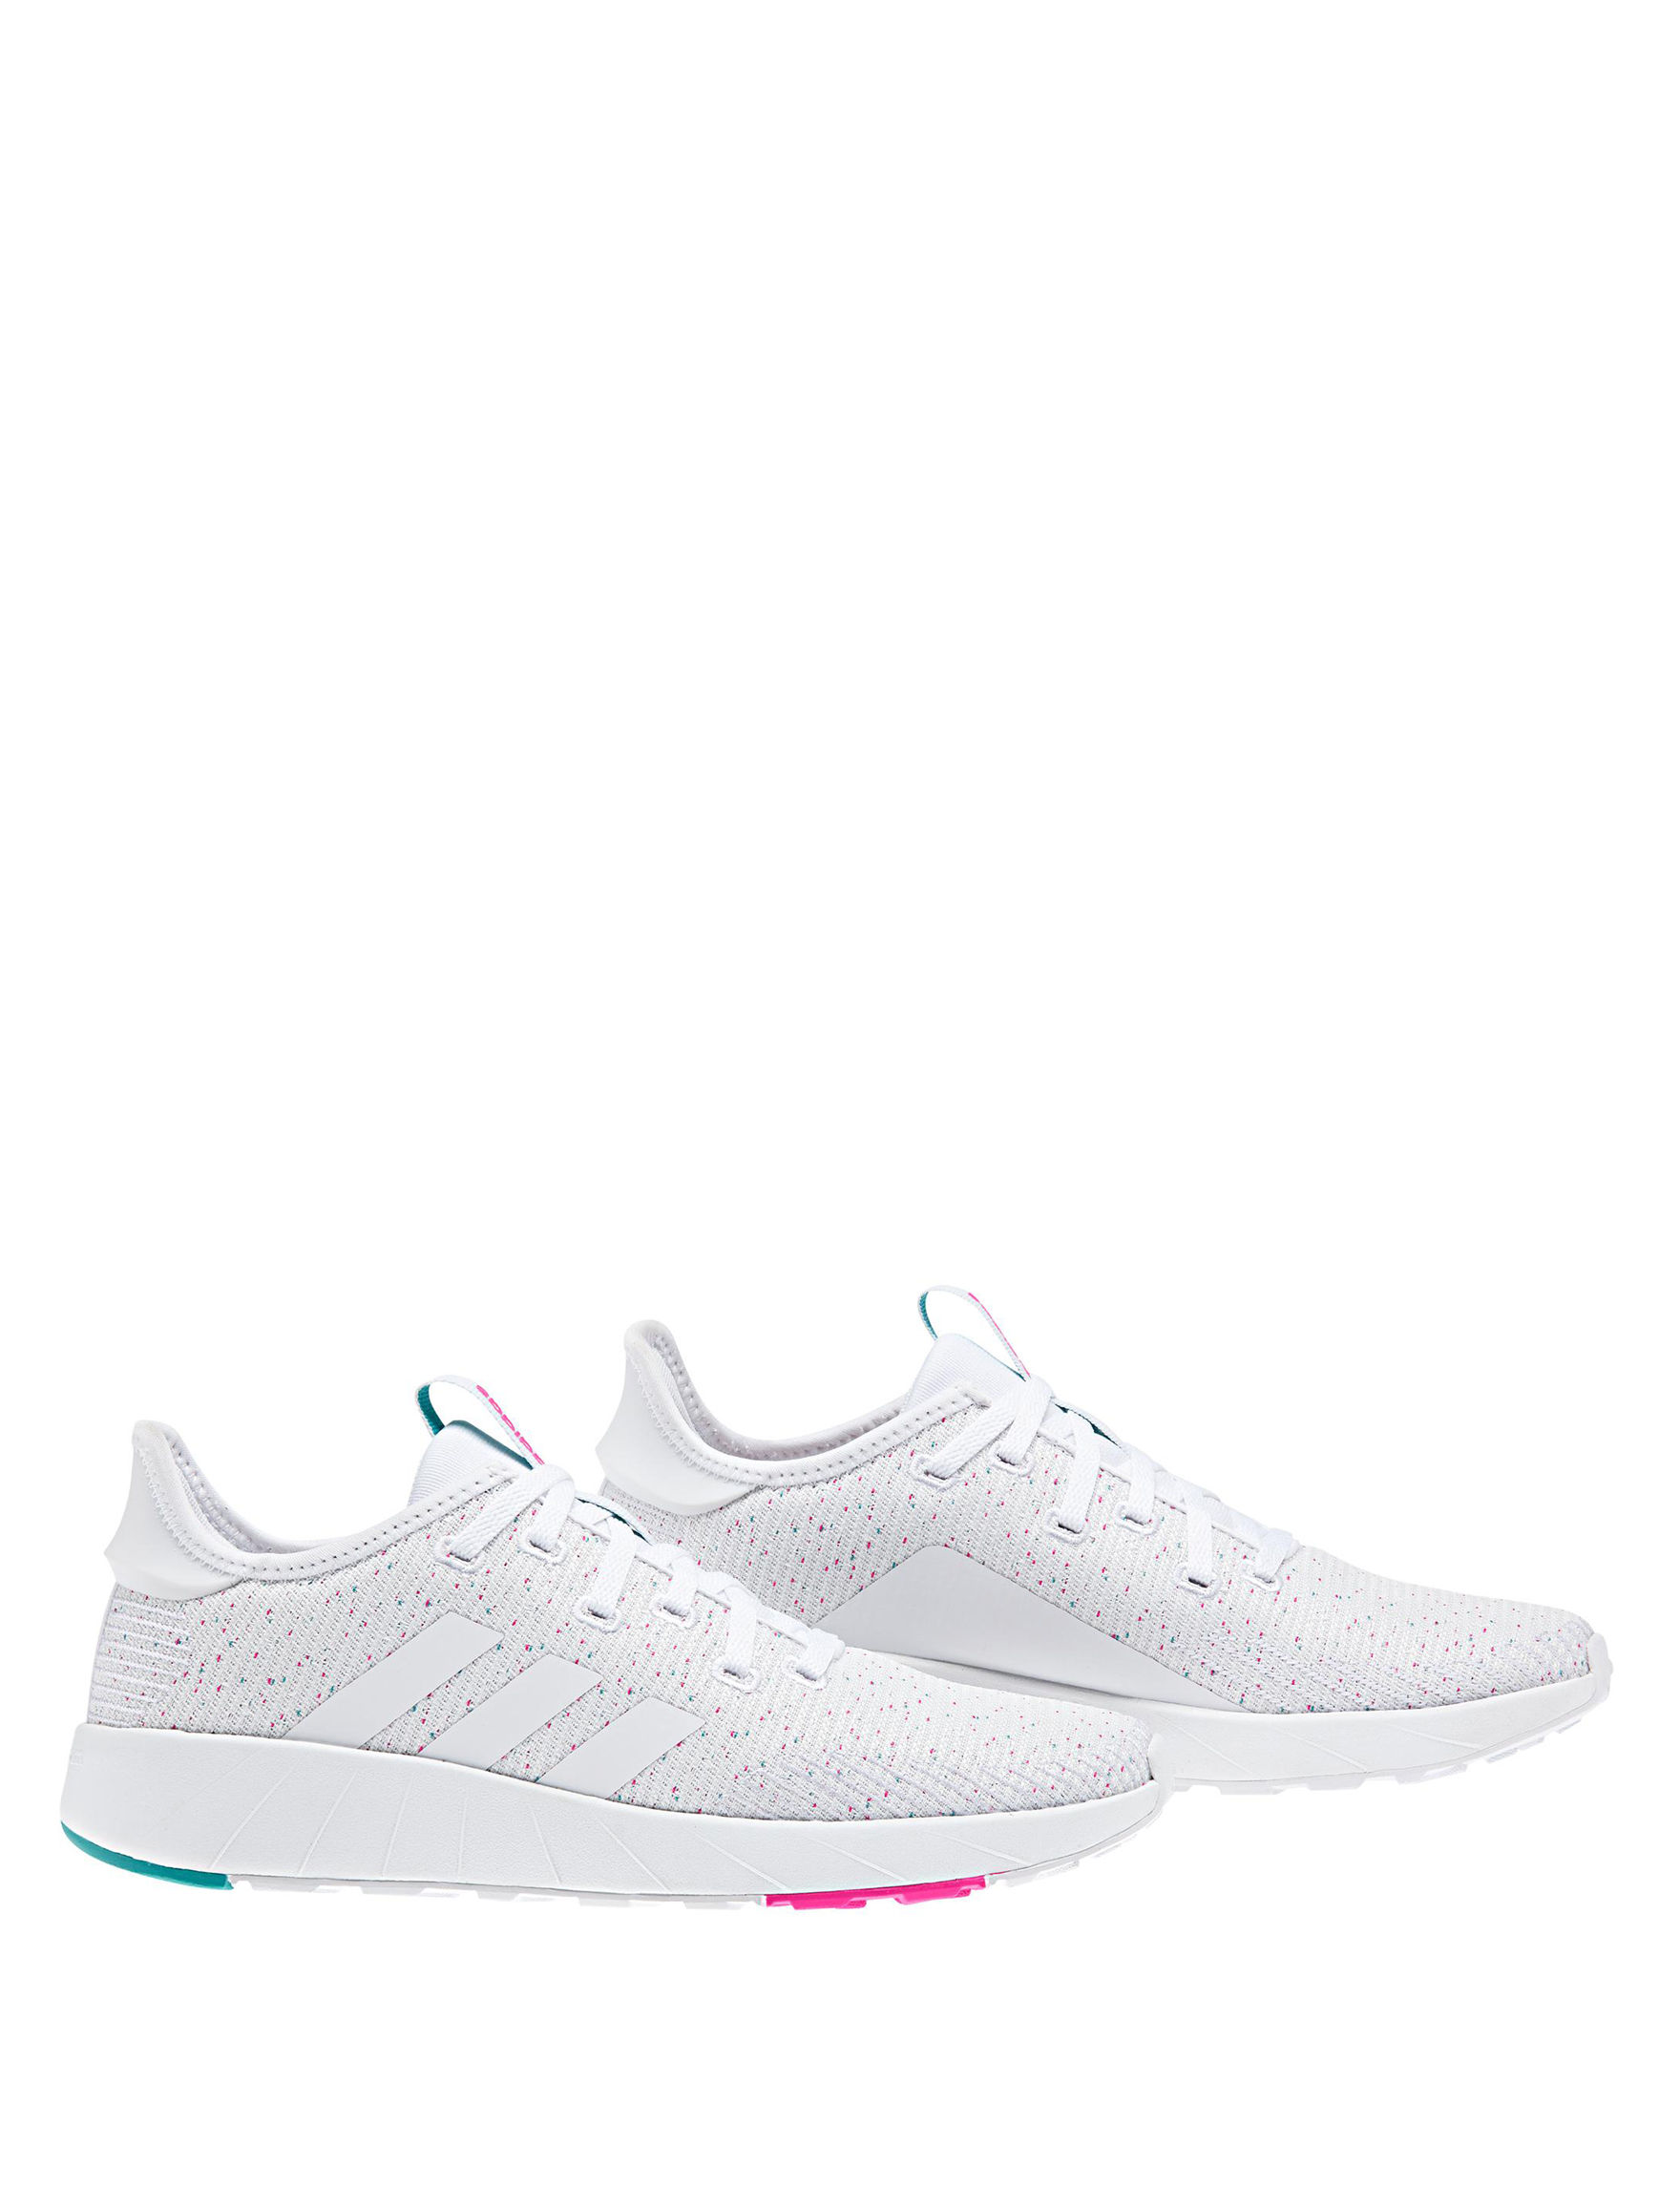 Adidas White Comfort Shoes